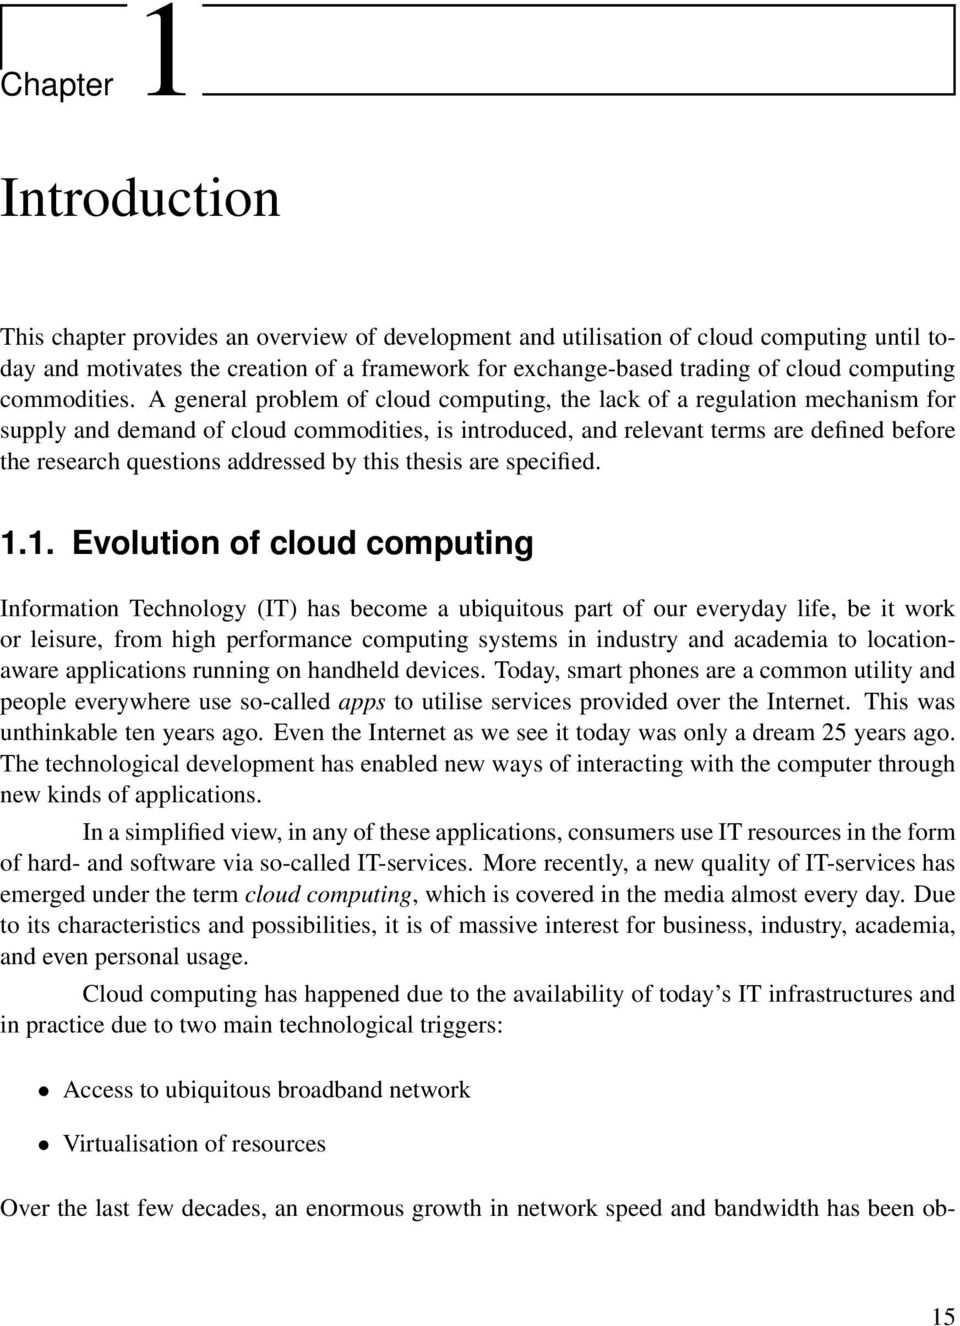 A general problem of cloud computing, the lack of a regulation mechanism for supply and demand of cloud commodities, is introduced, and relevant terms are defined before the research questions